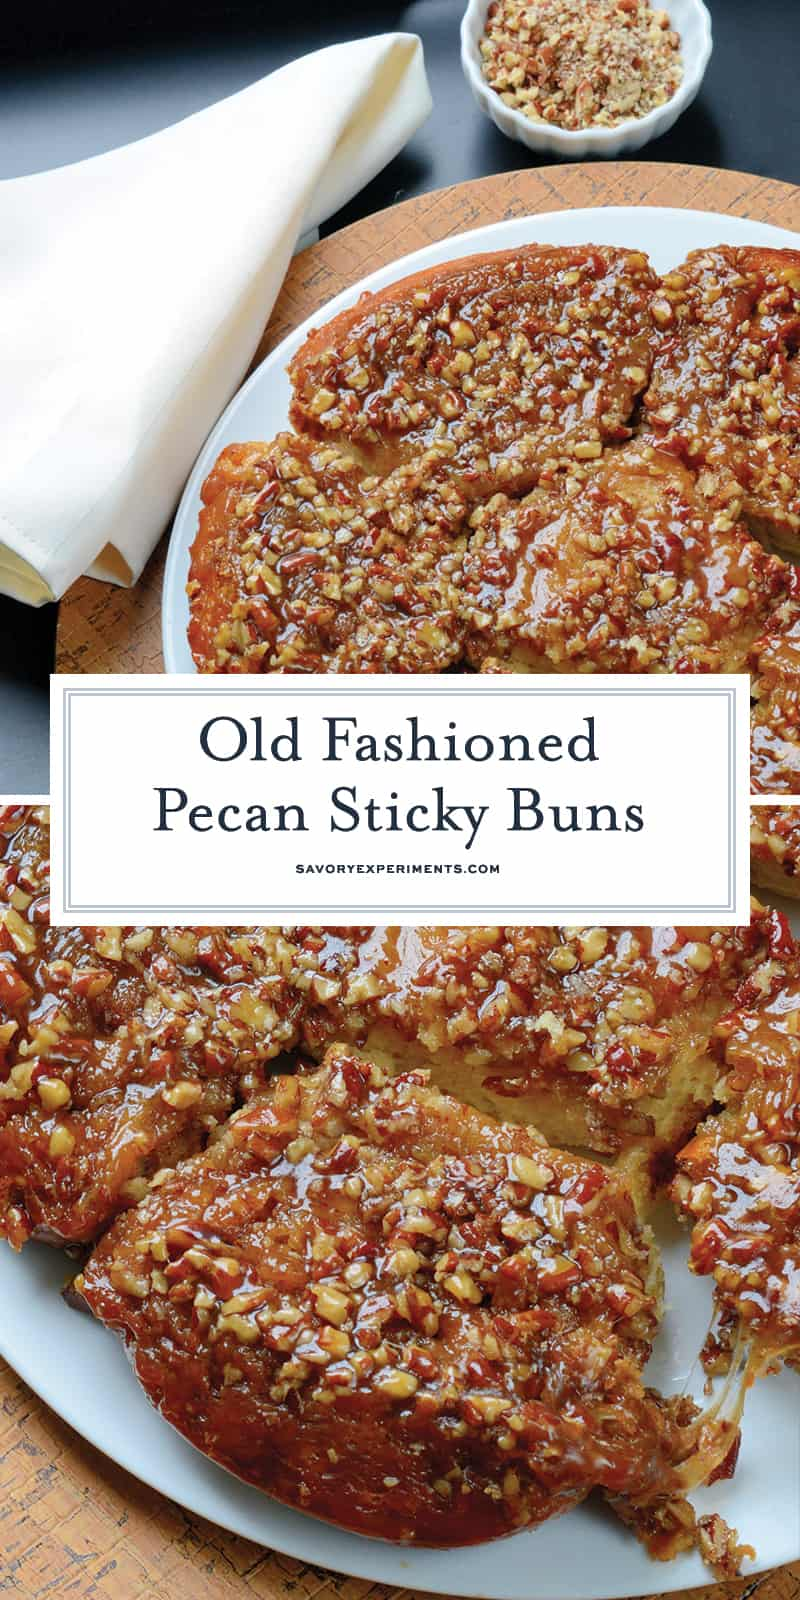 Pecan Sticky Buns are the best hot sticky bun recipe out there, made just the way grandma on the farm made them with a caramel pecan sauce. #stickybuns #stickybunrecipe www.savoryexperiments.com